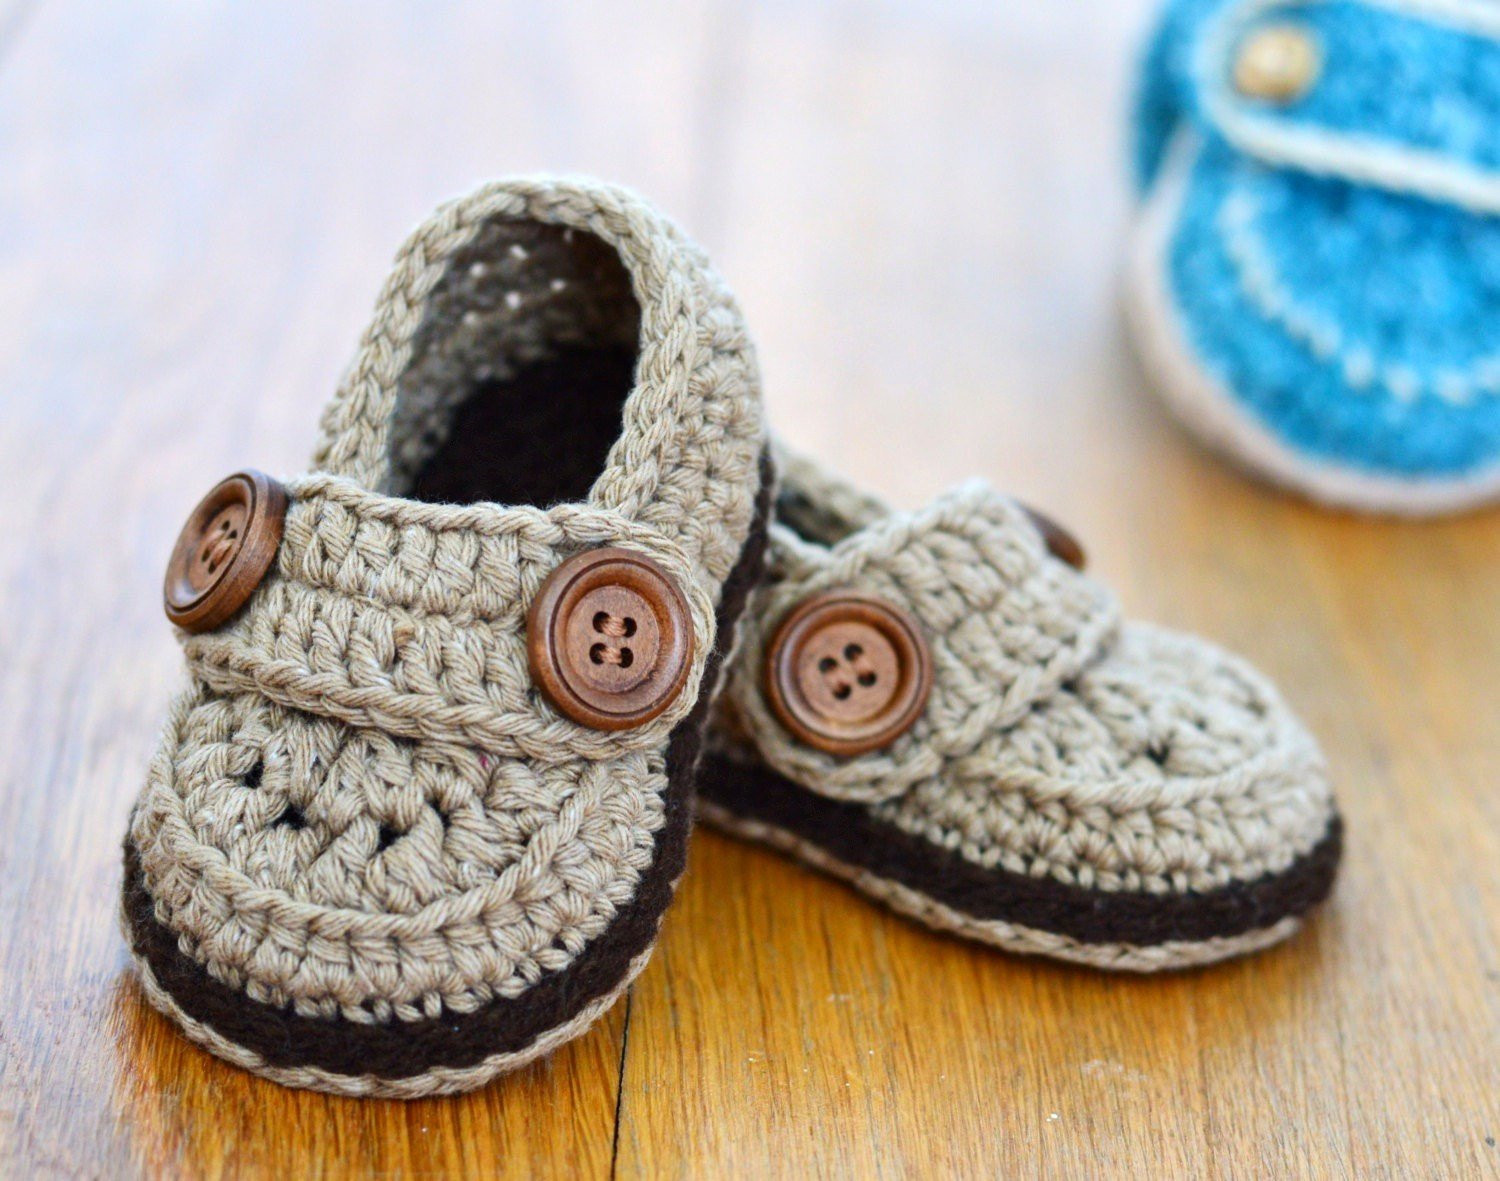 Crochet Baby Booties Inspirational Crochet Pattern Baby Booties Baby Boy Loafers Easy Photo Of Crochet Baby Booties Fresh Crochet Baby Mary Jane Booties Free Patterns